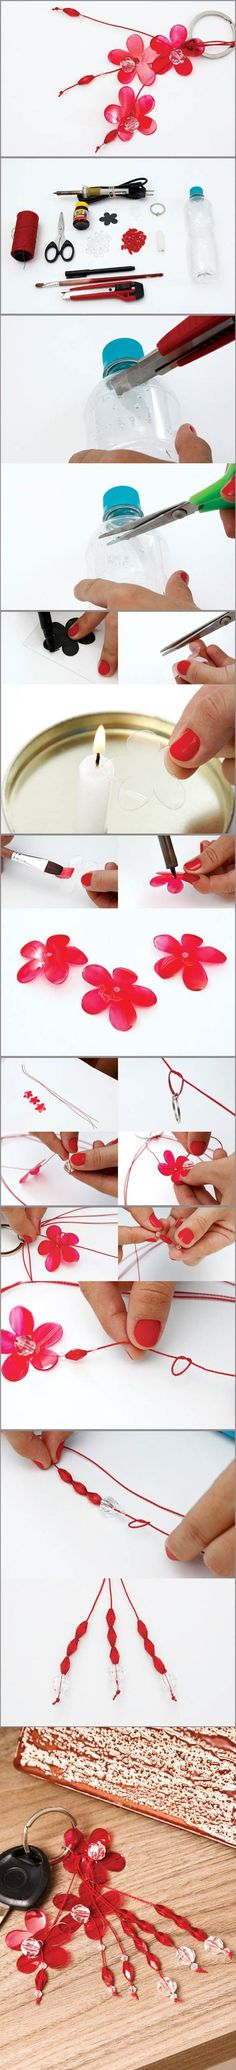 DIY Flower Key Chains from Plastic Bottle | iCreativeIdeas.com Like Us on Facebook == https://www.facebook.com/icreativeideas